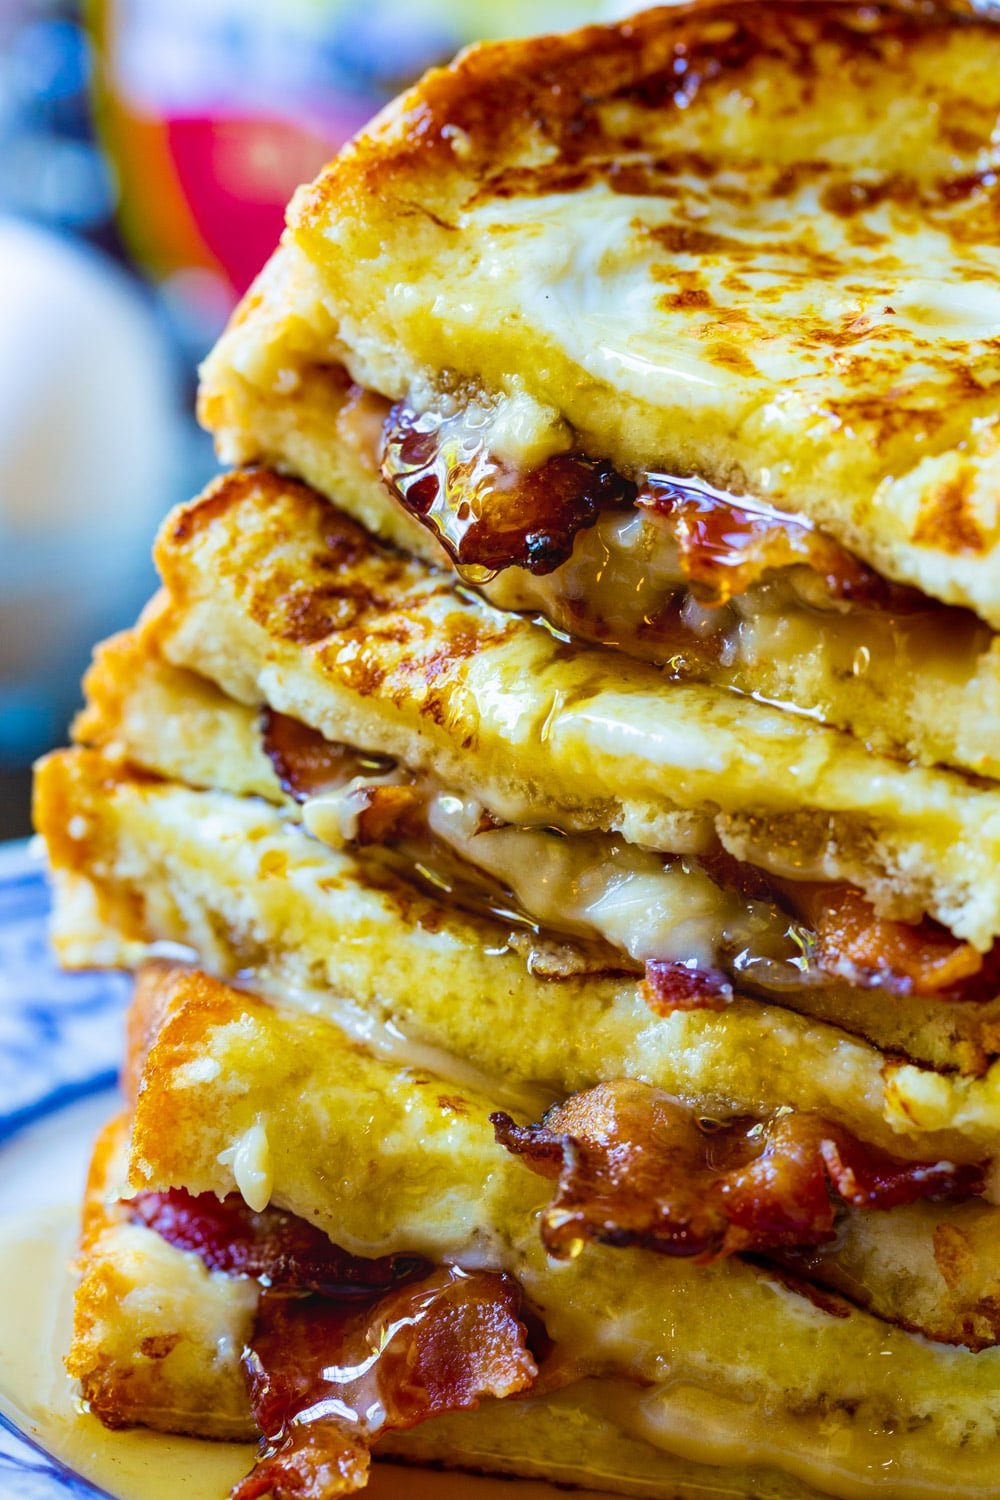 Close-up of Bacon Stuffed French Toast